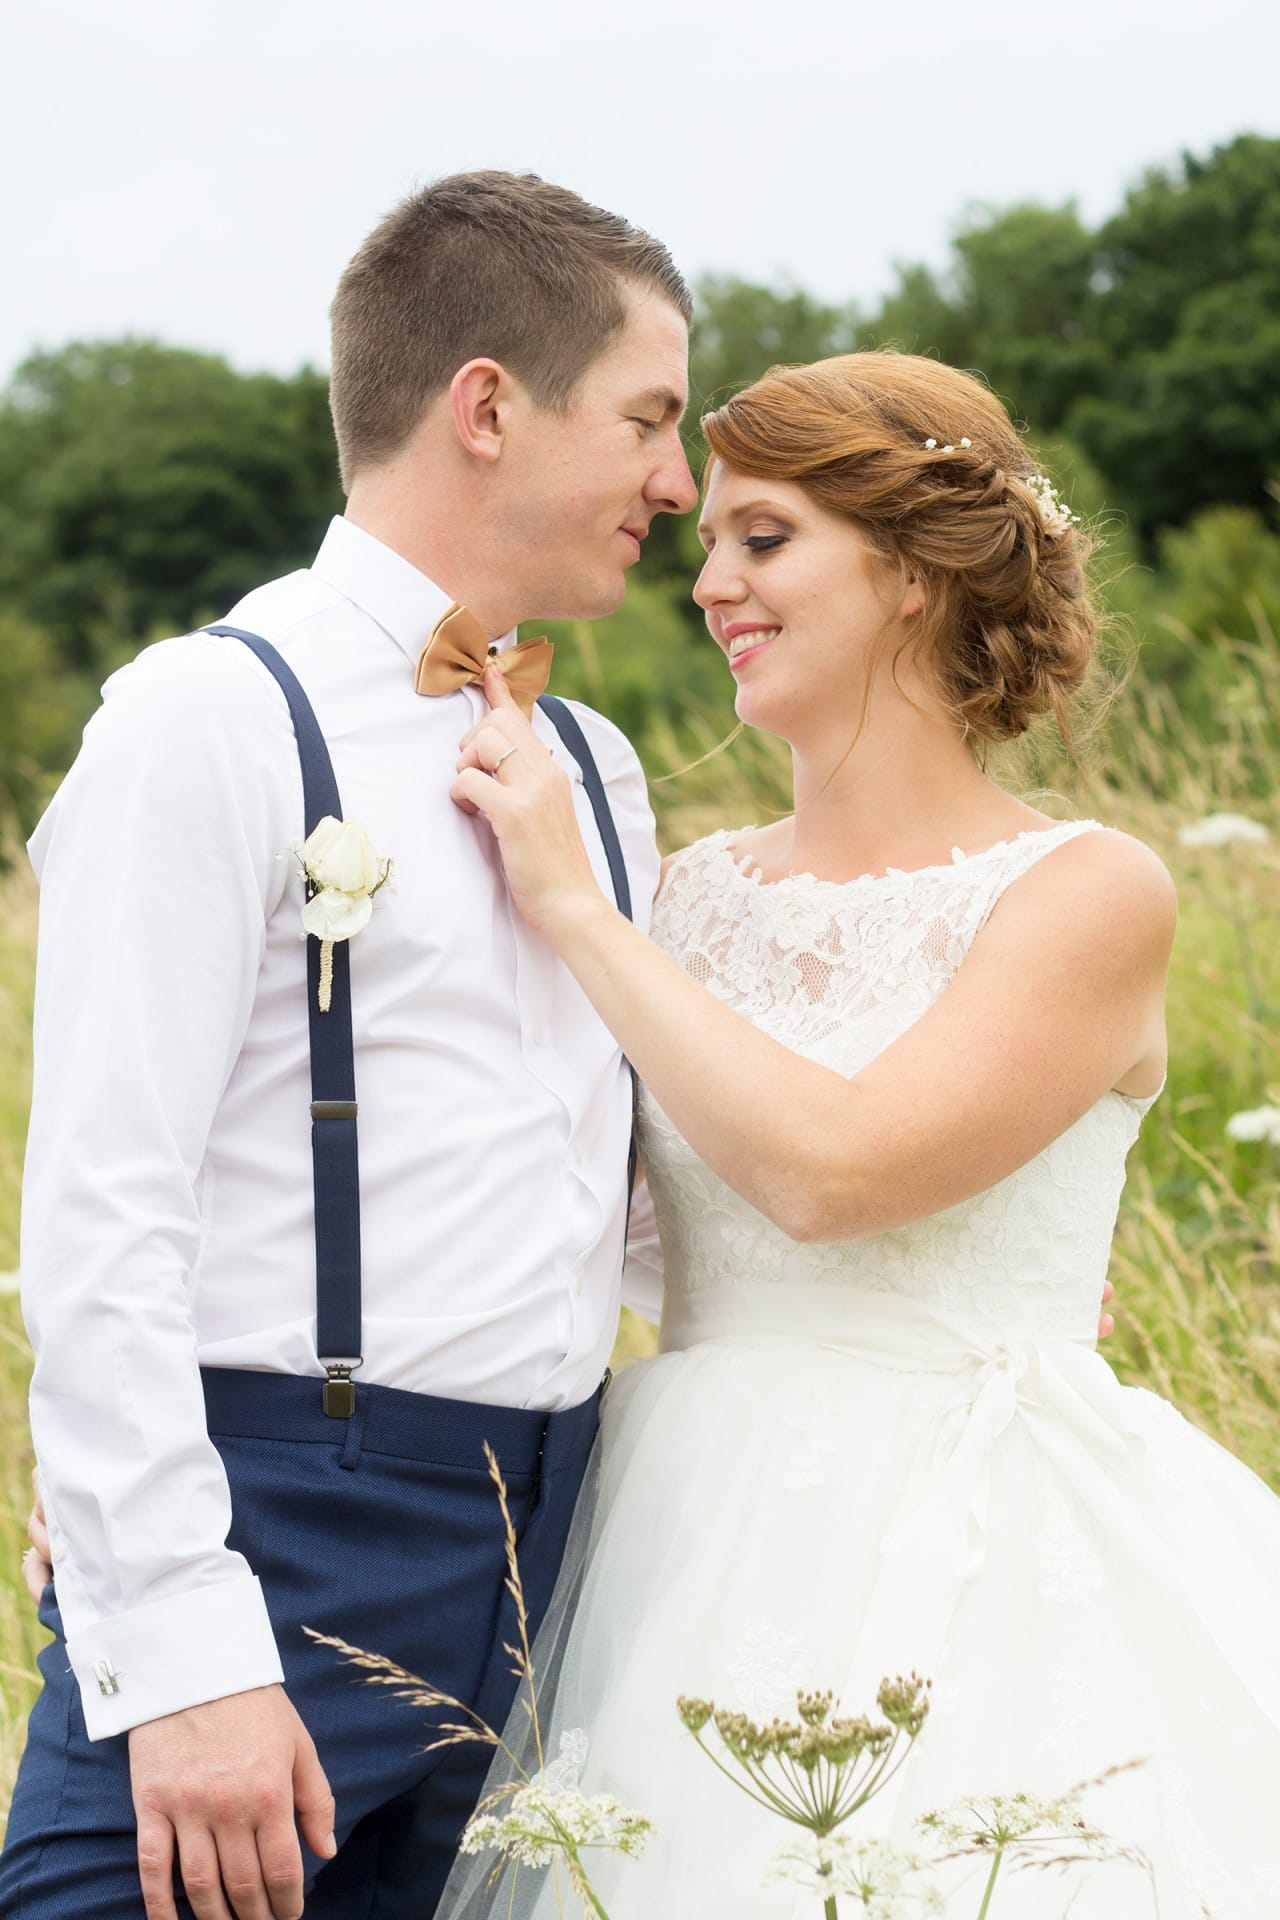 Groom with Real Bride Wearing Maggie Sottero Wedding Dress in the UK